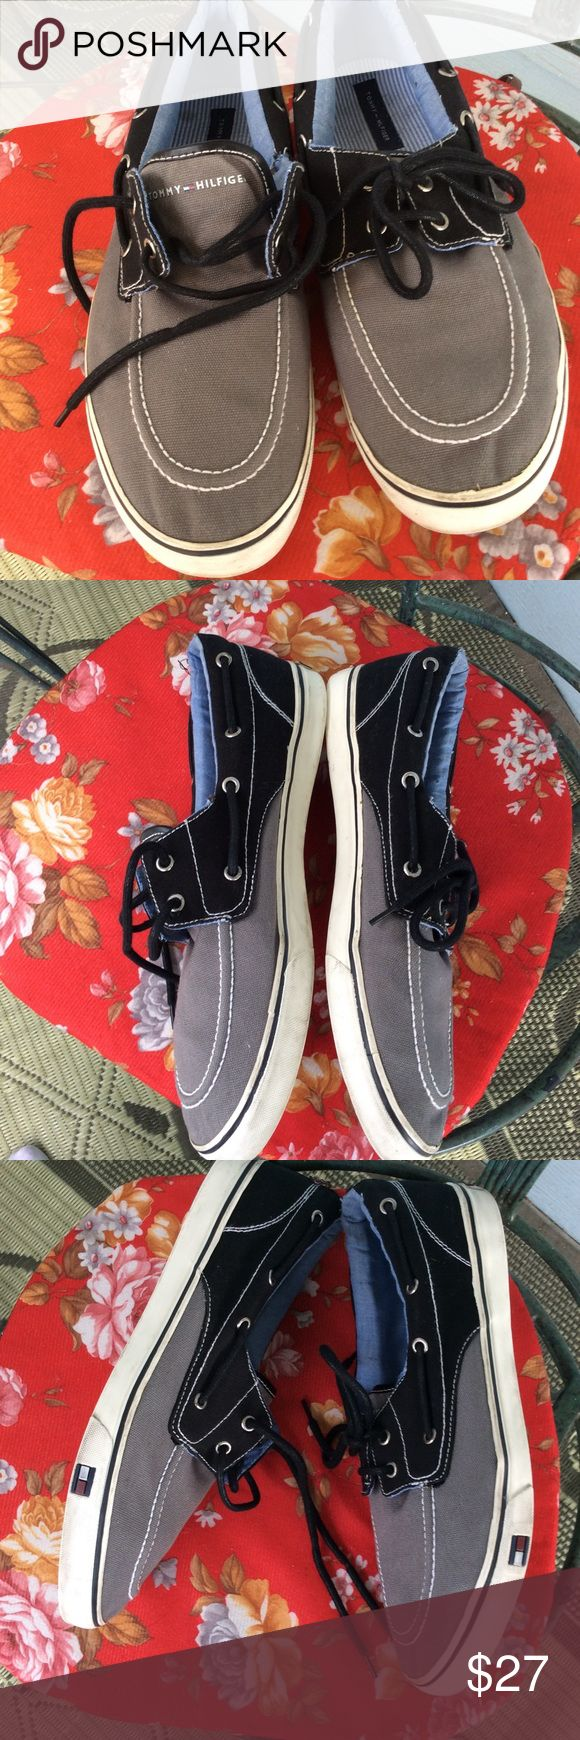 Tommy Hilfiger Grey 'n Black Boat Shoes In immaculate condition.  Bottom of soles are a little dirty. Very little wear on the heels.  No tears,rips or stains. Tommy Hilfiger Shoes Boat Shoes